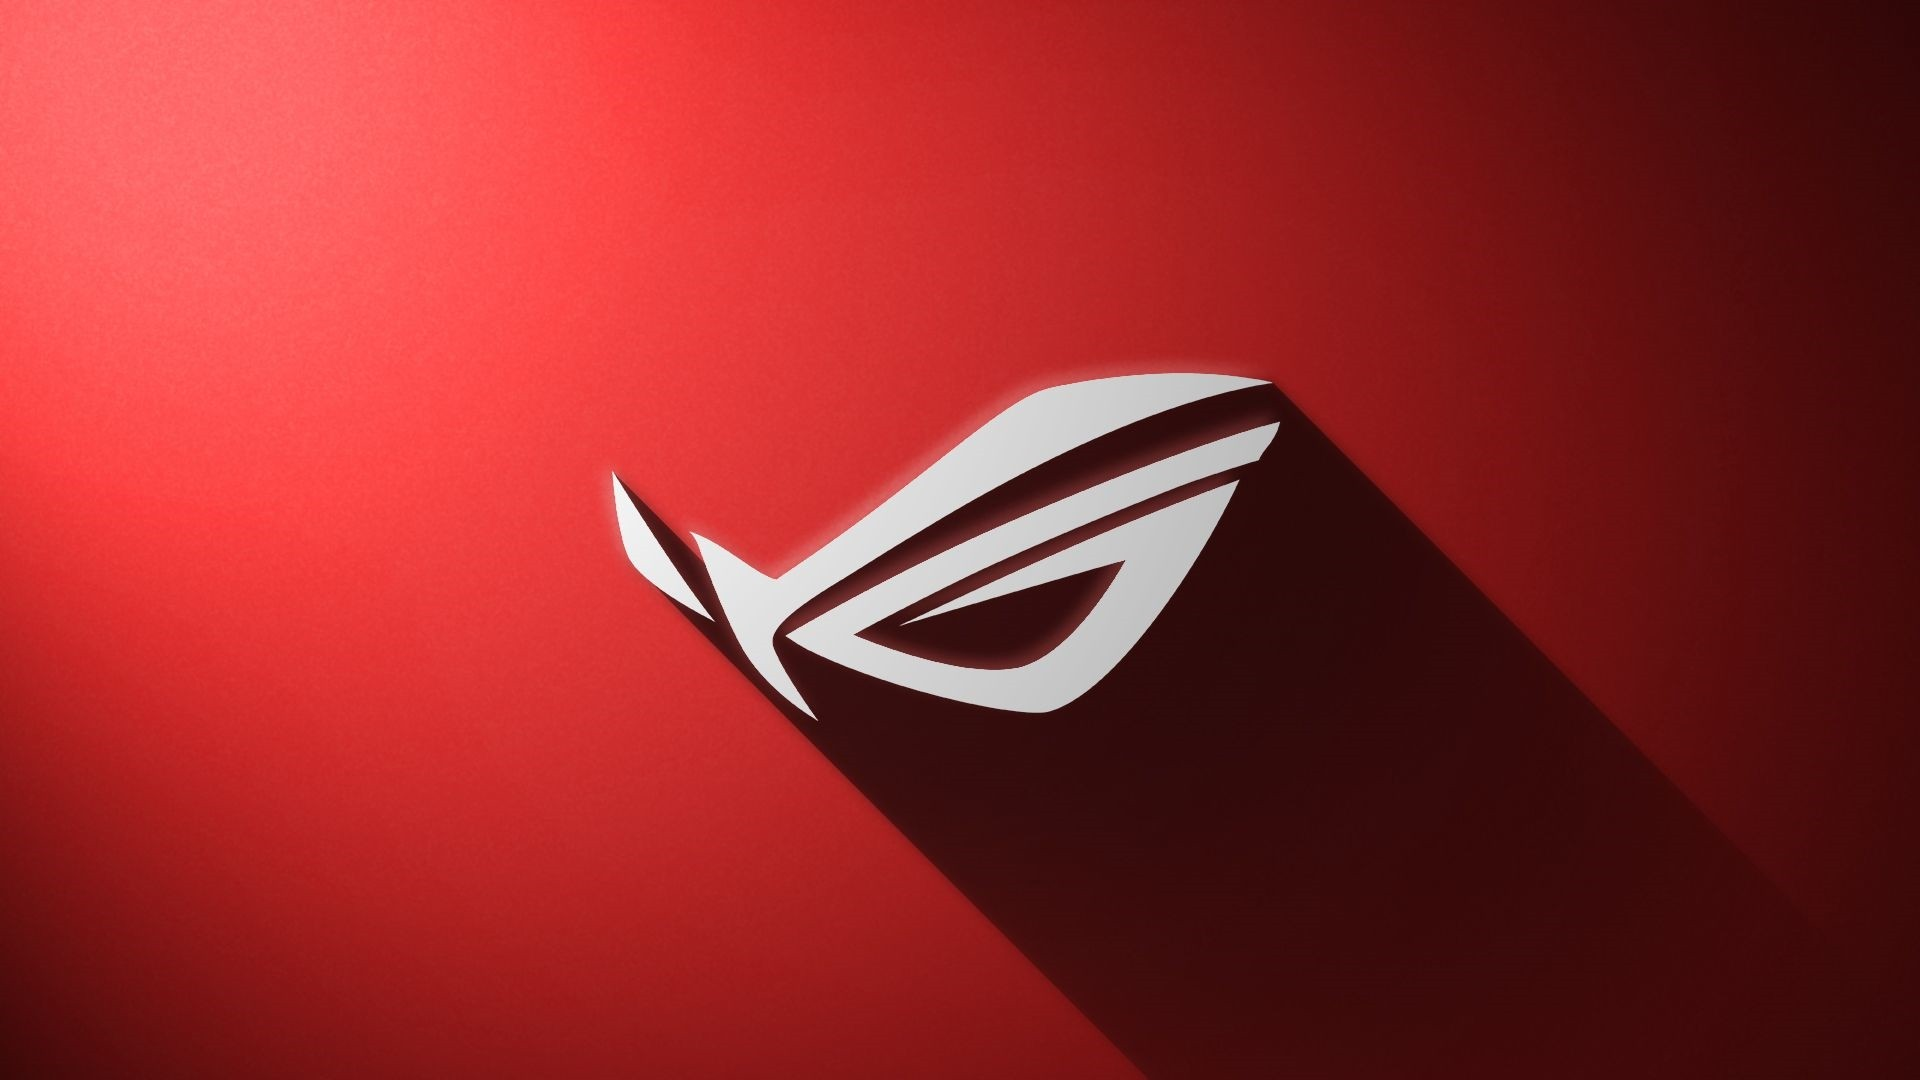 Rog Wallpaper Full HD